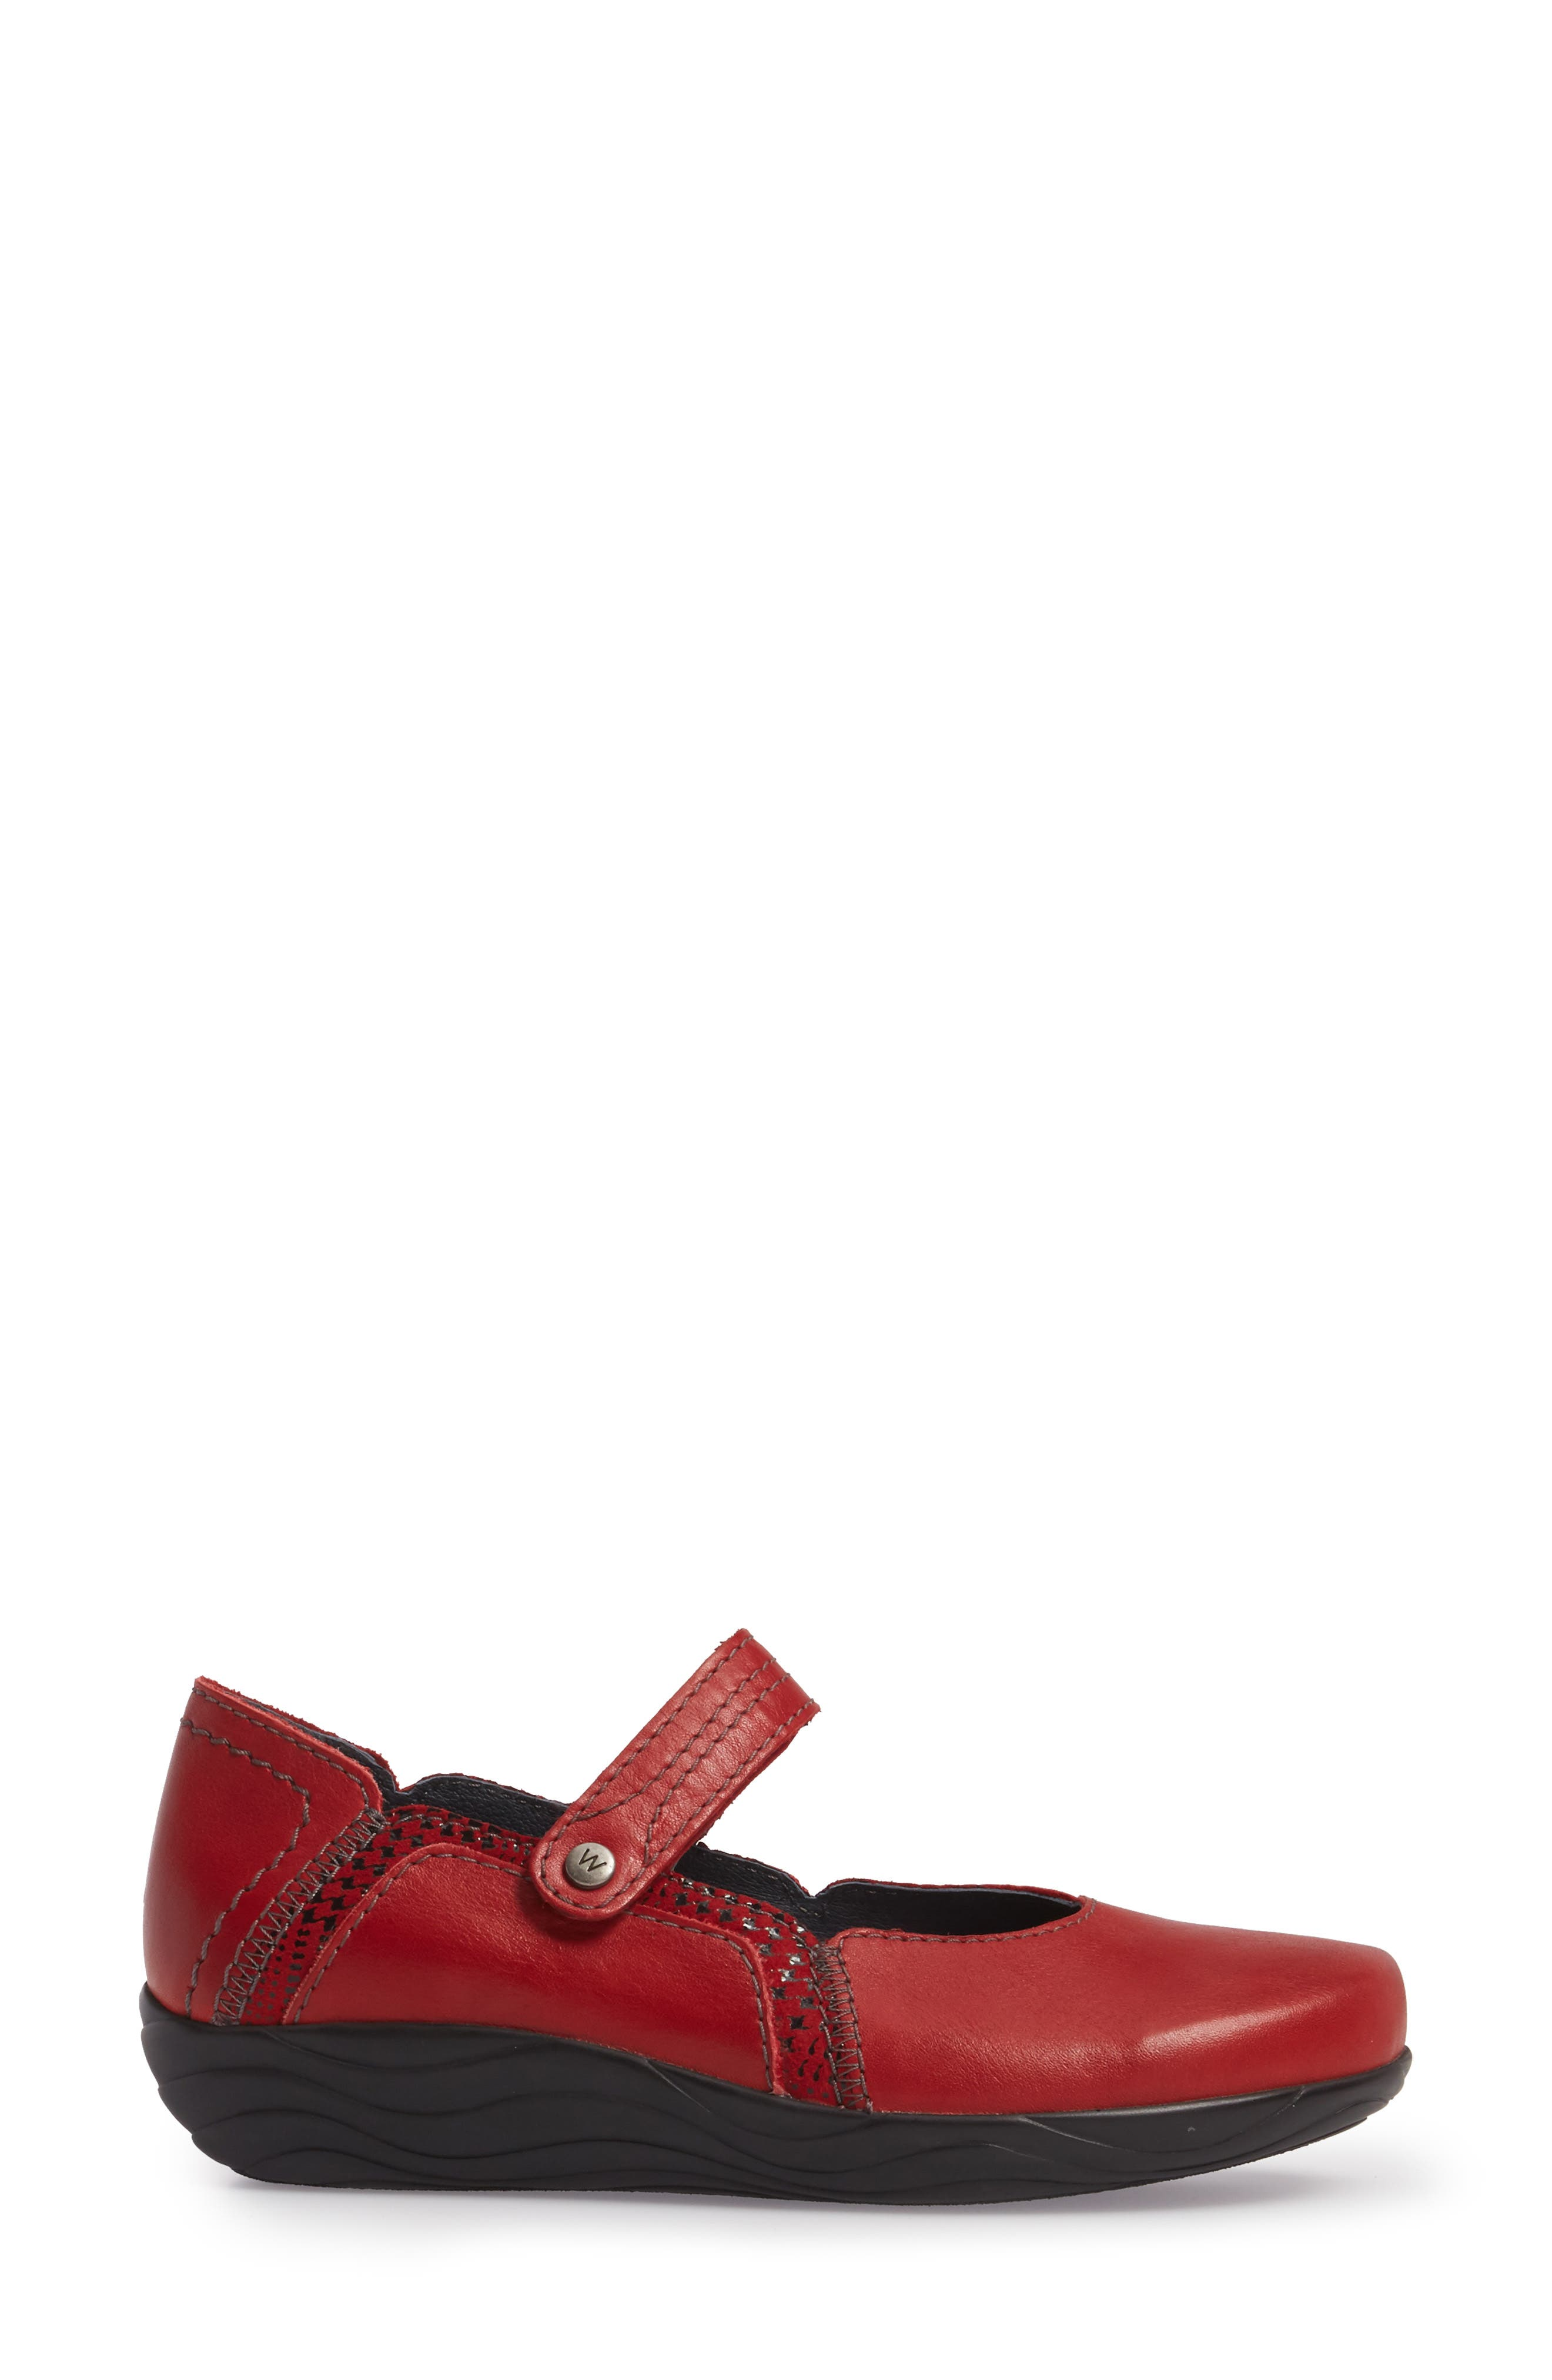 Gila Mary-Jane Flat,                             Alternate thumbnail 3, color,                             RED LEATHER